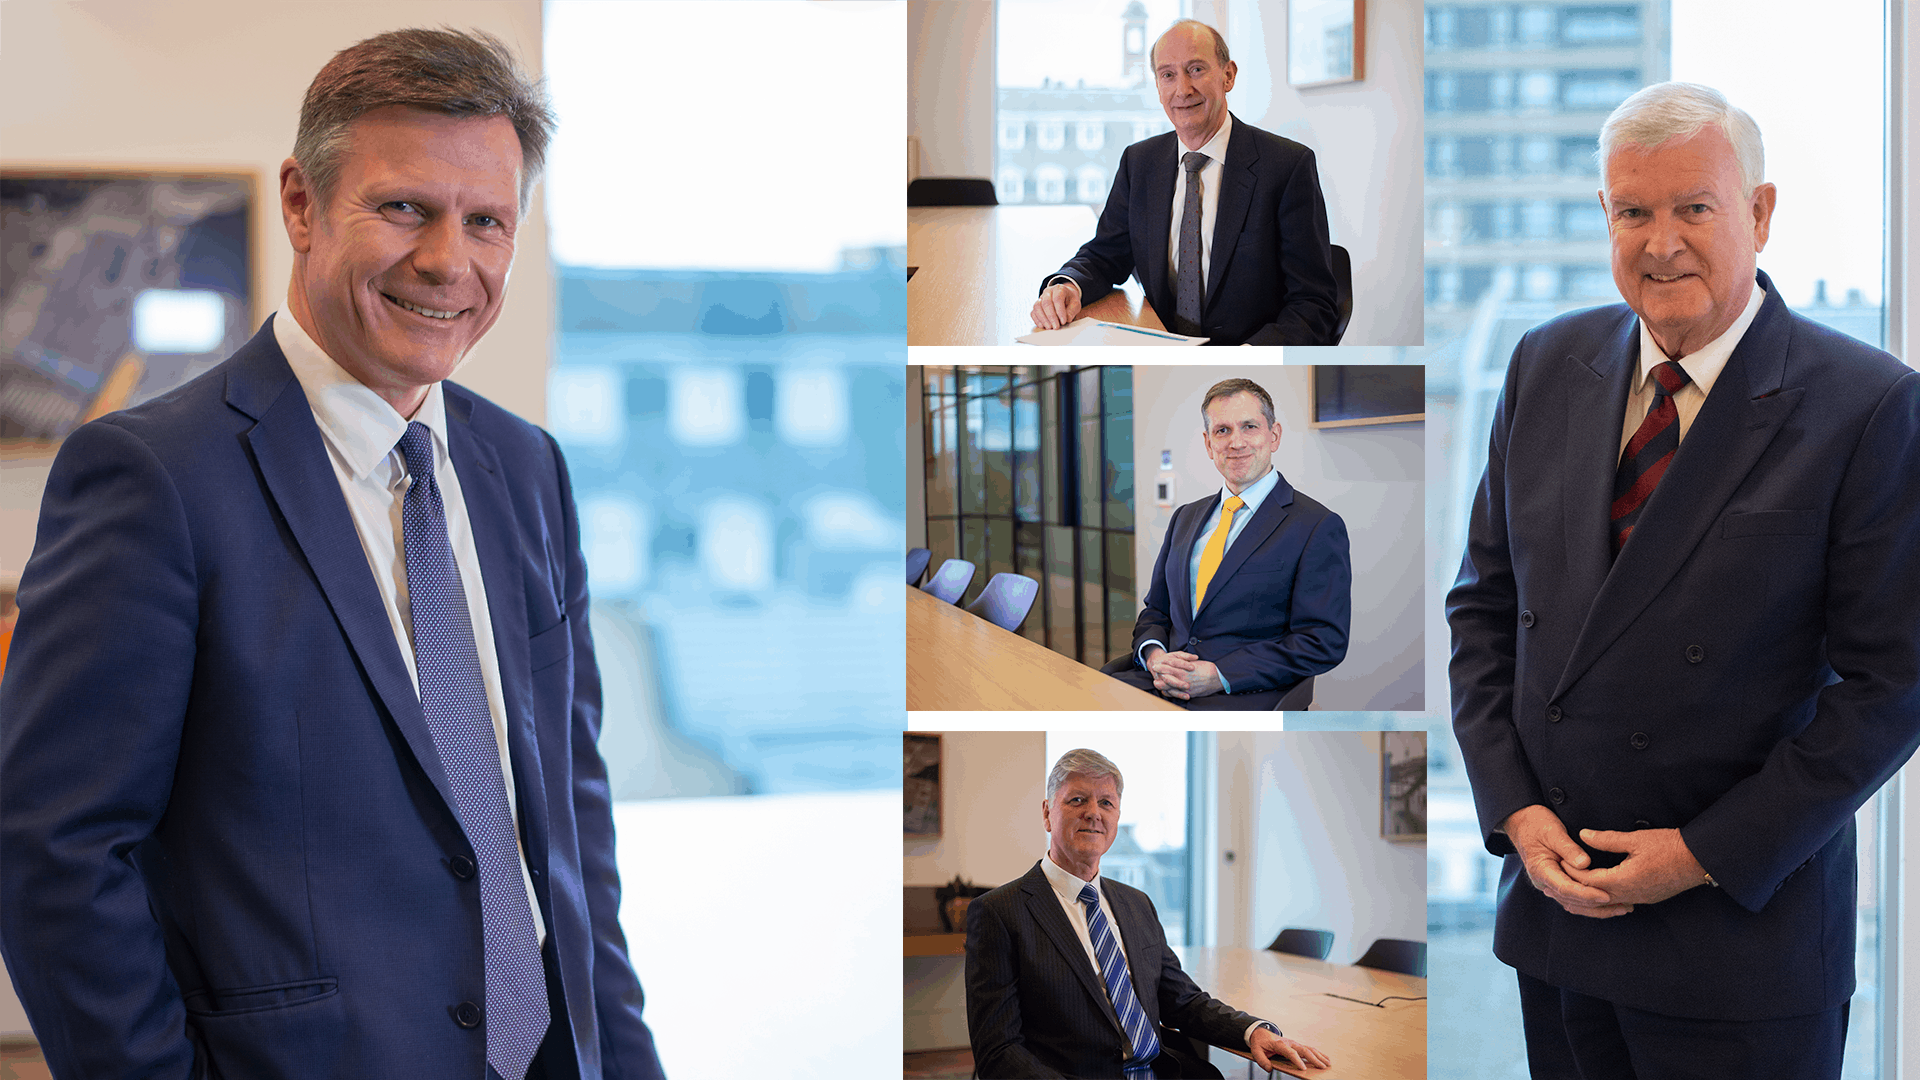 HSS Hire Board of Directors Photo Shoot – London